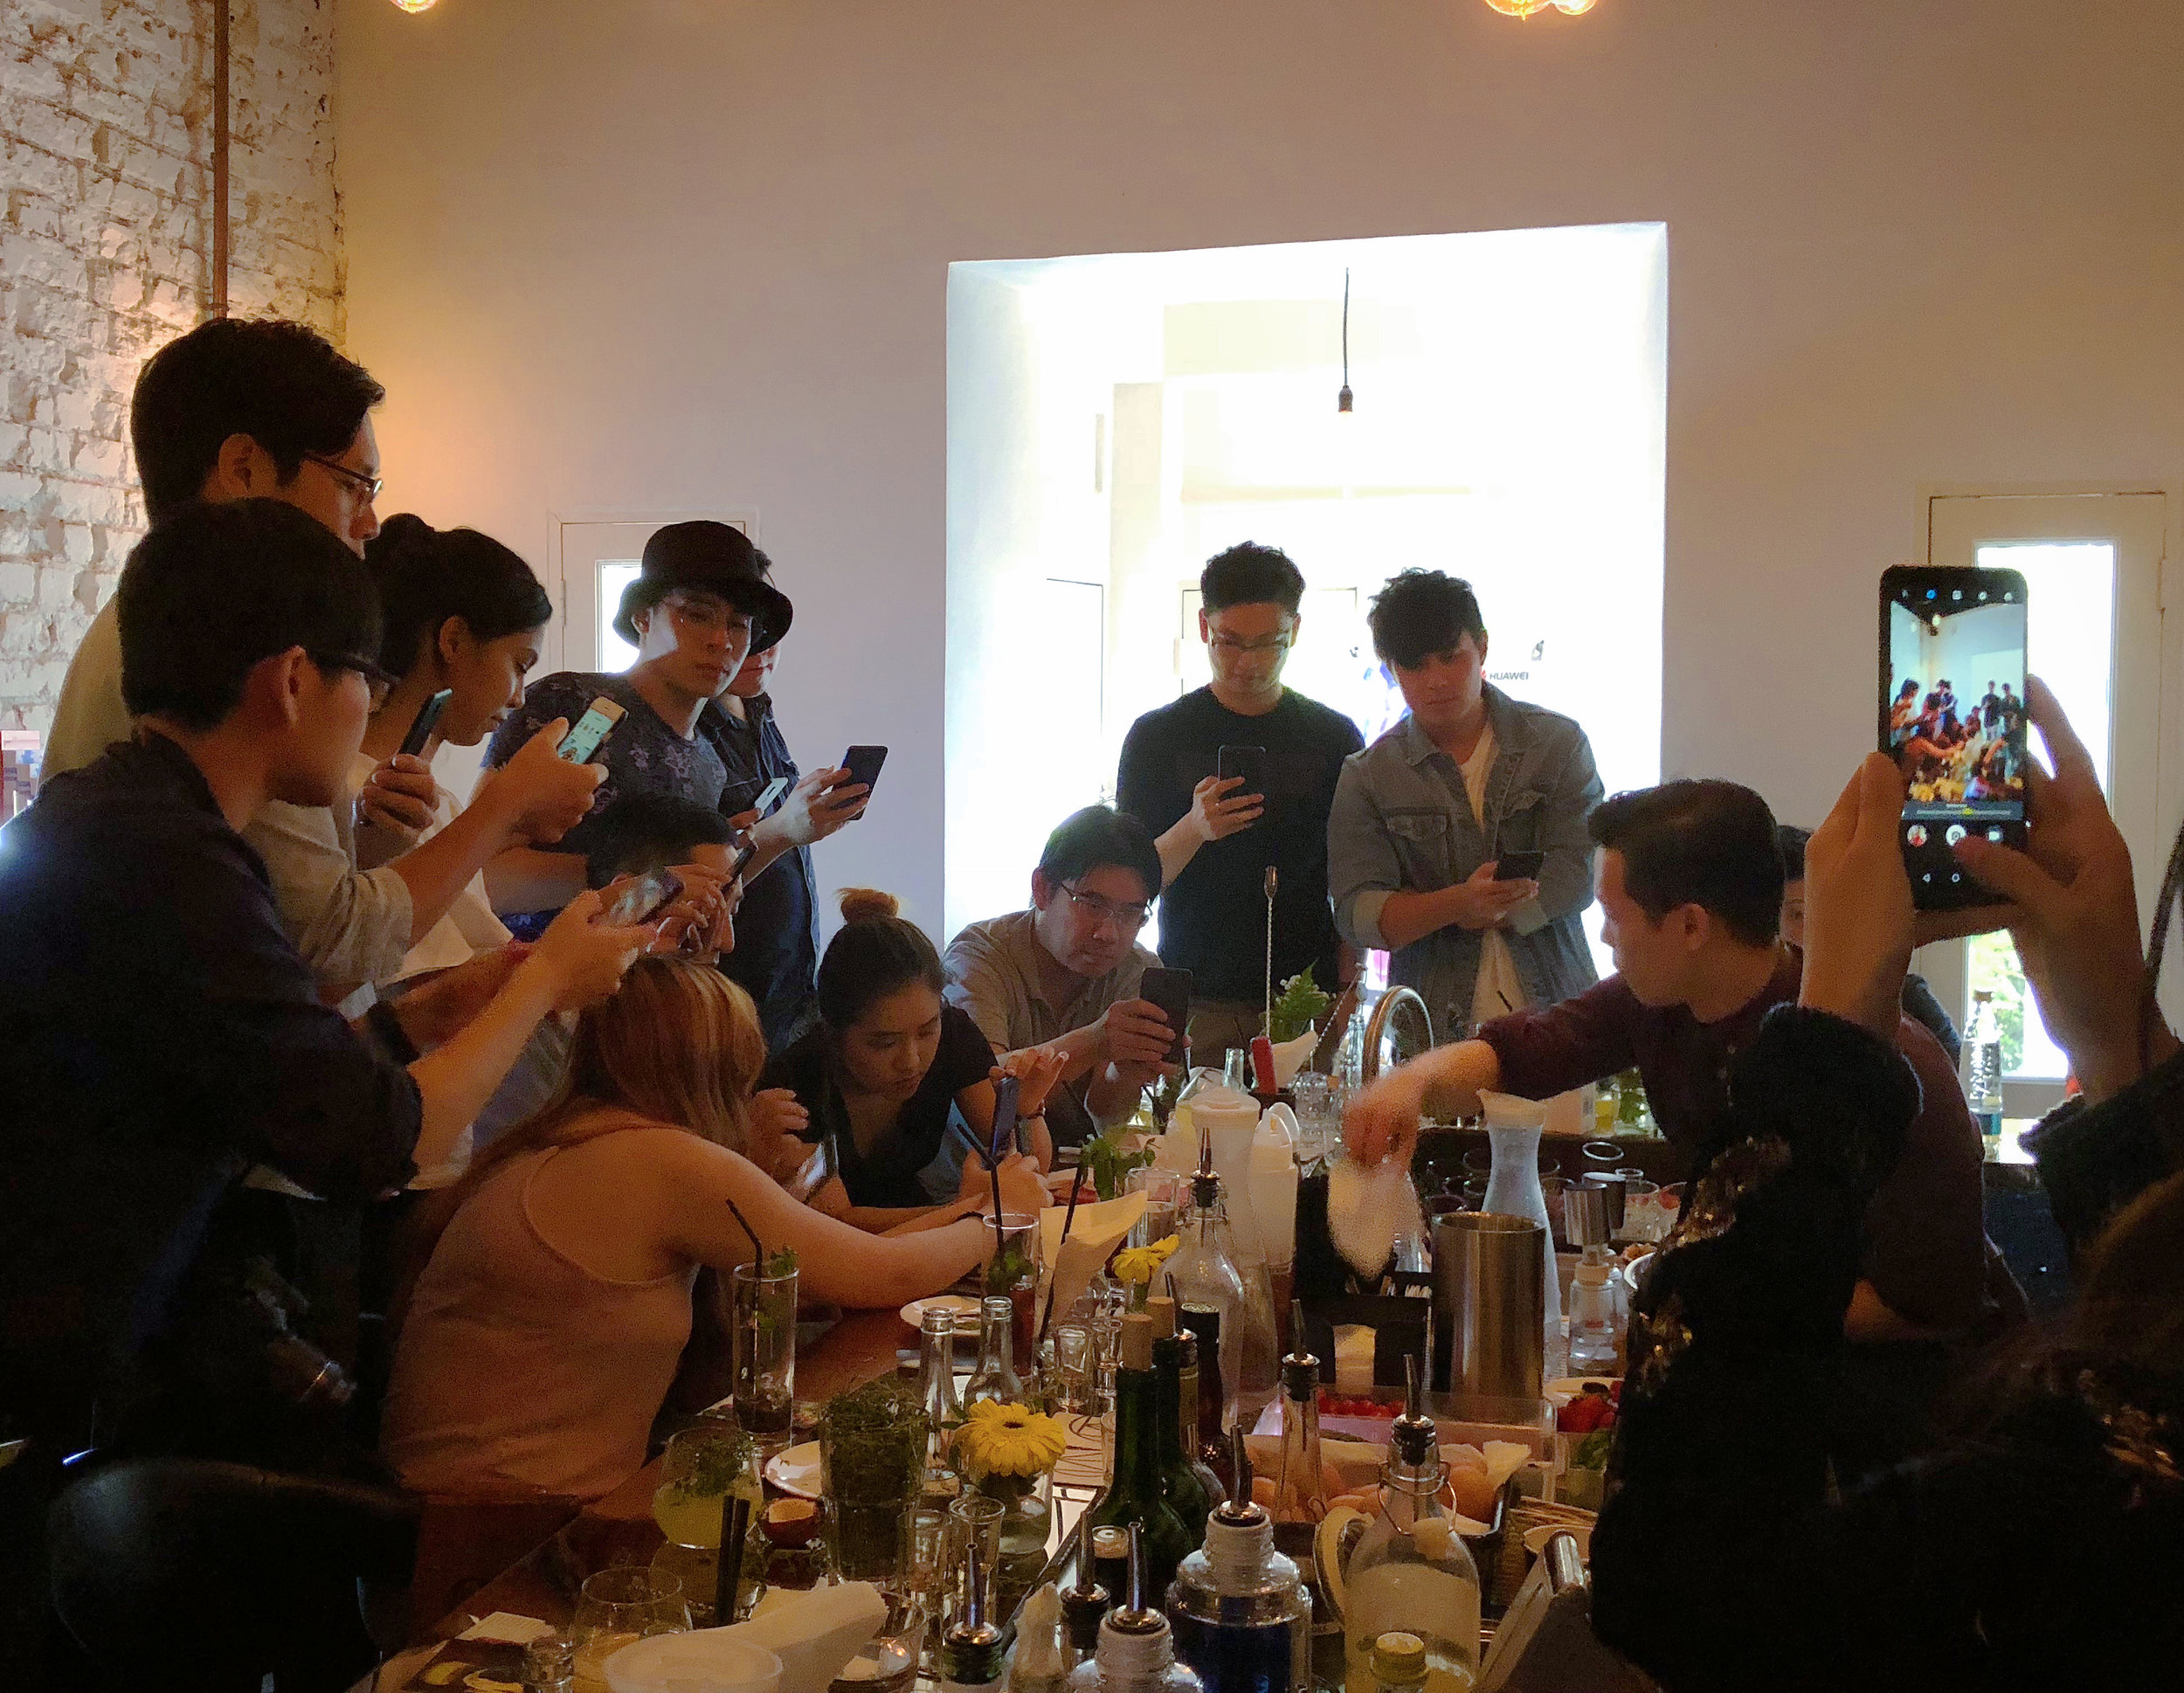 Huawei_Mixology_Workshop-008.jpg